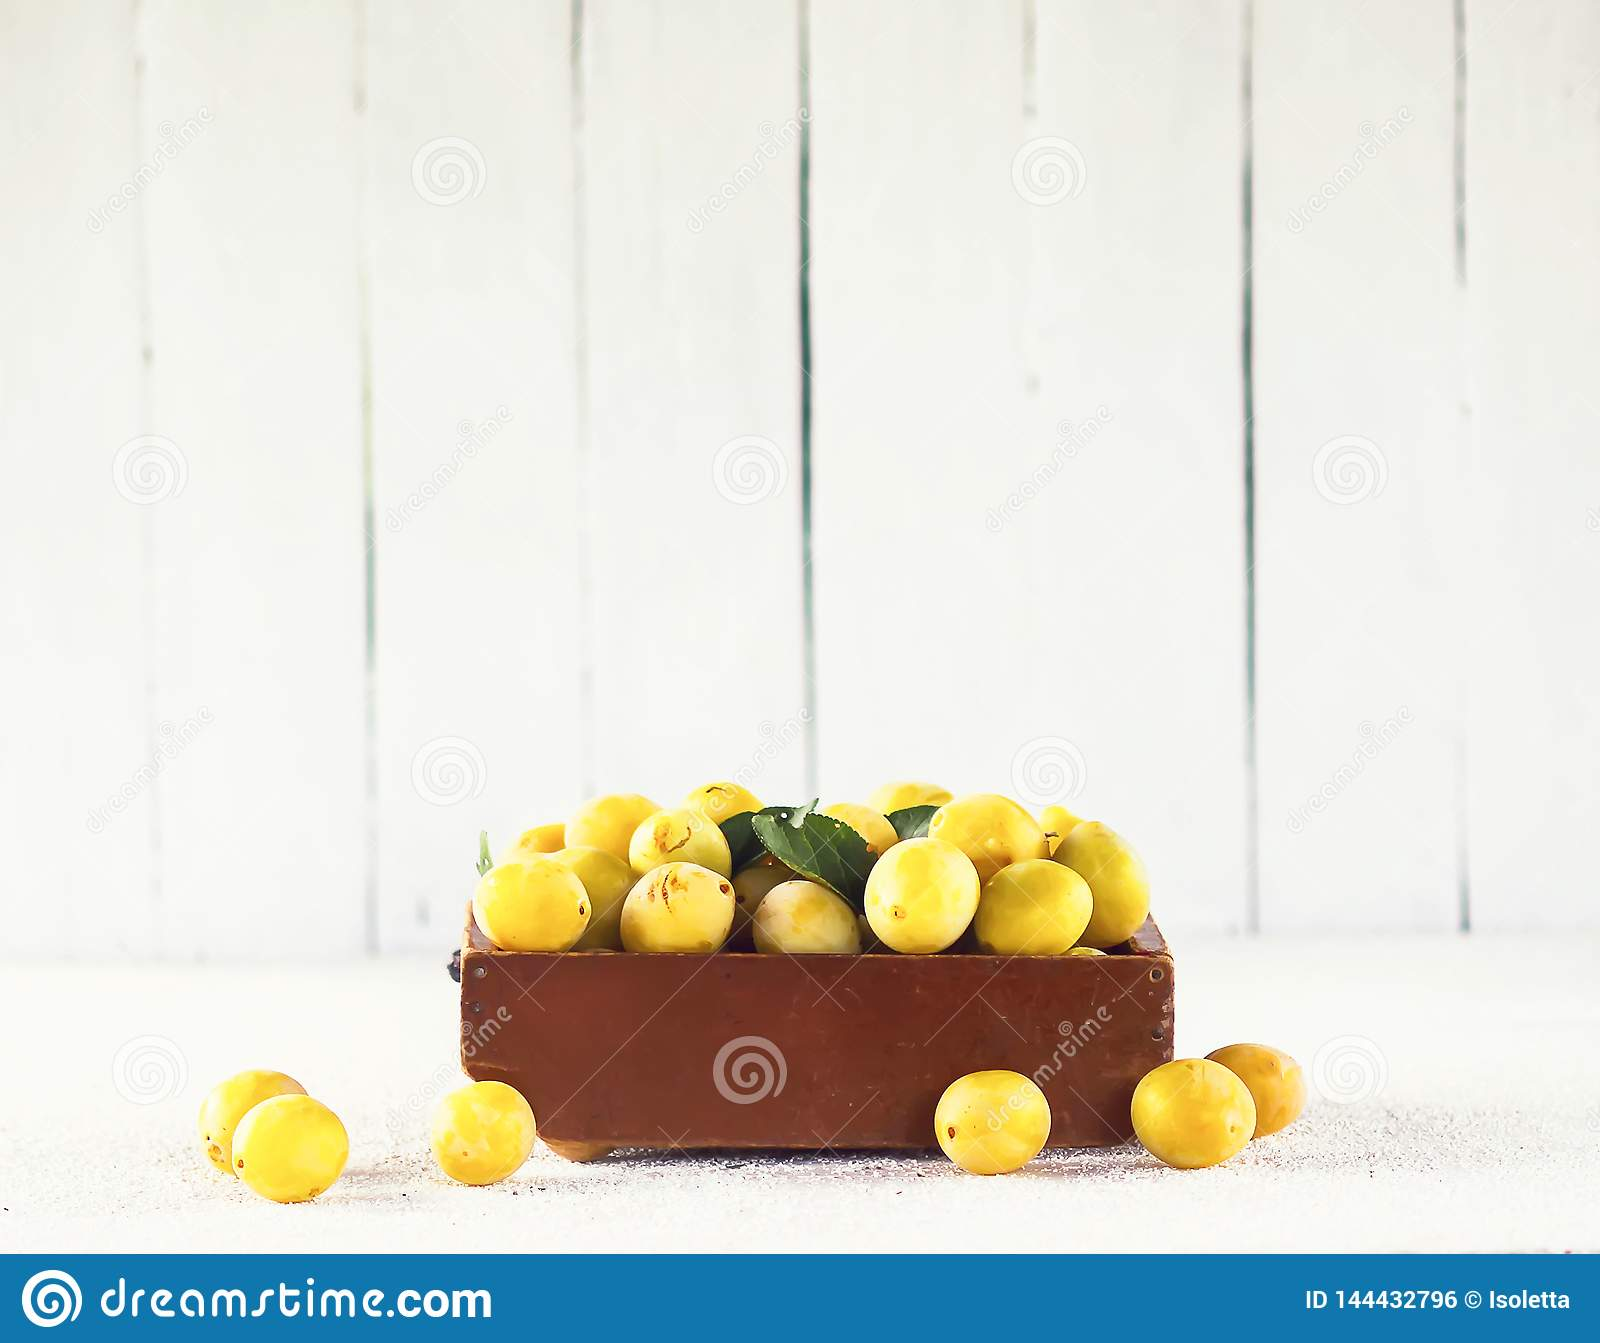 Fresh yellow plums. Ripe fruits in a wooden box on white boards